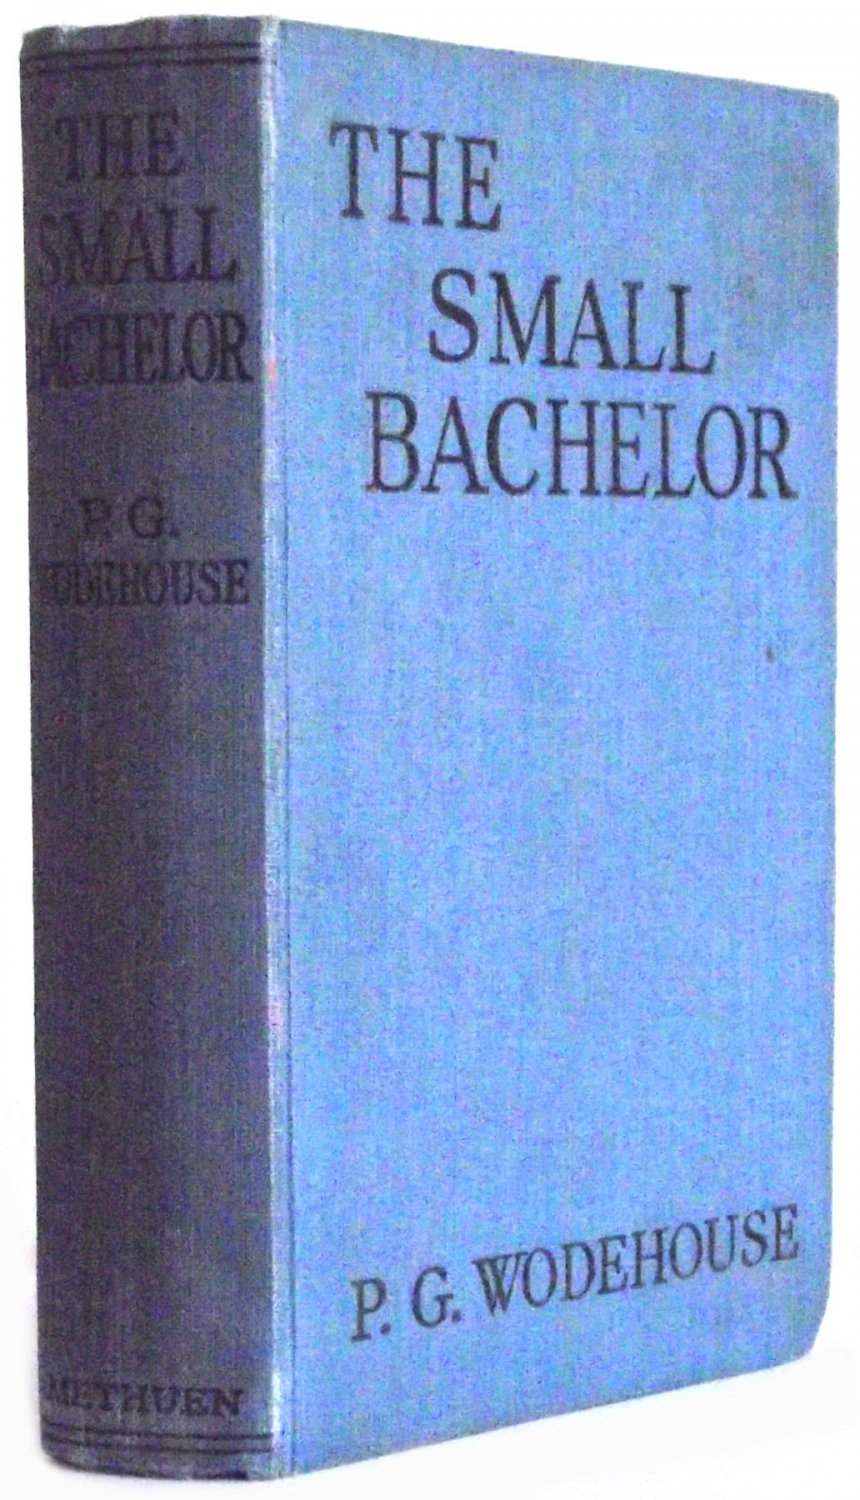 P.G. Wodehouse The Small Bachelor First Edition 1927